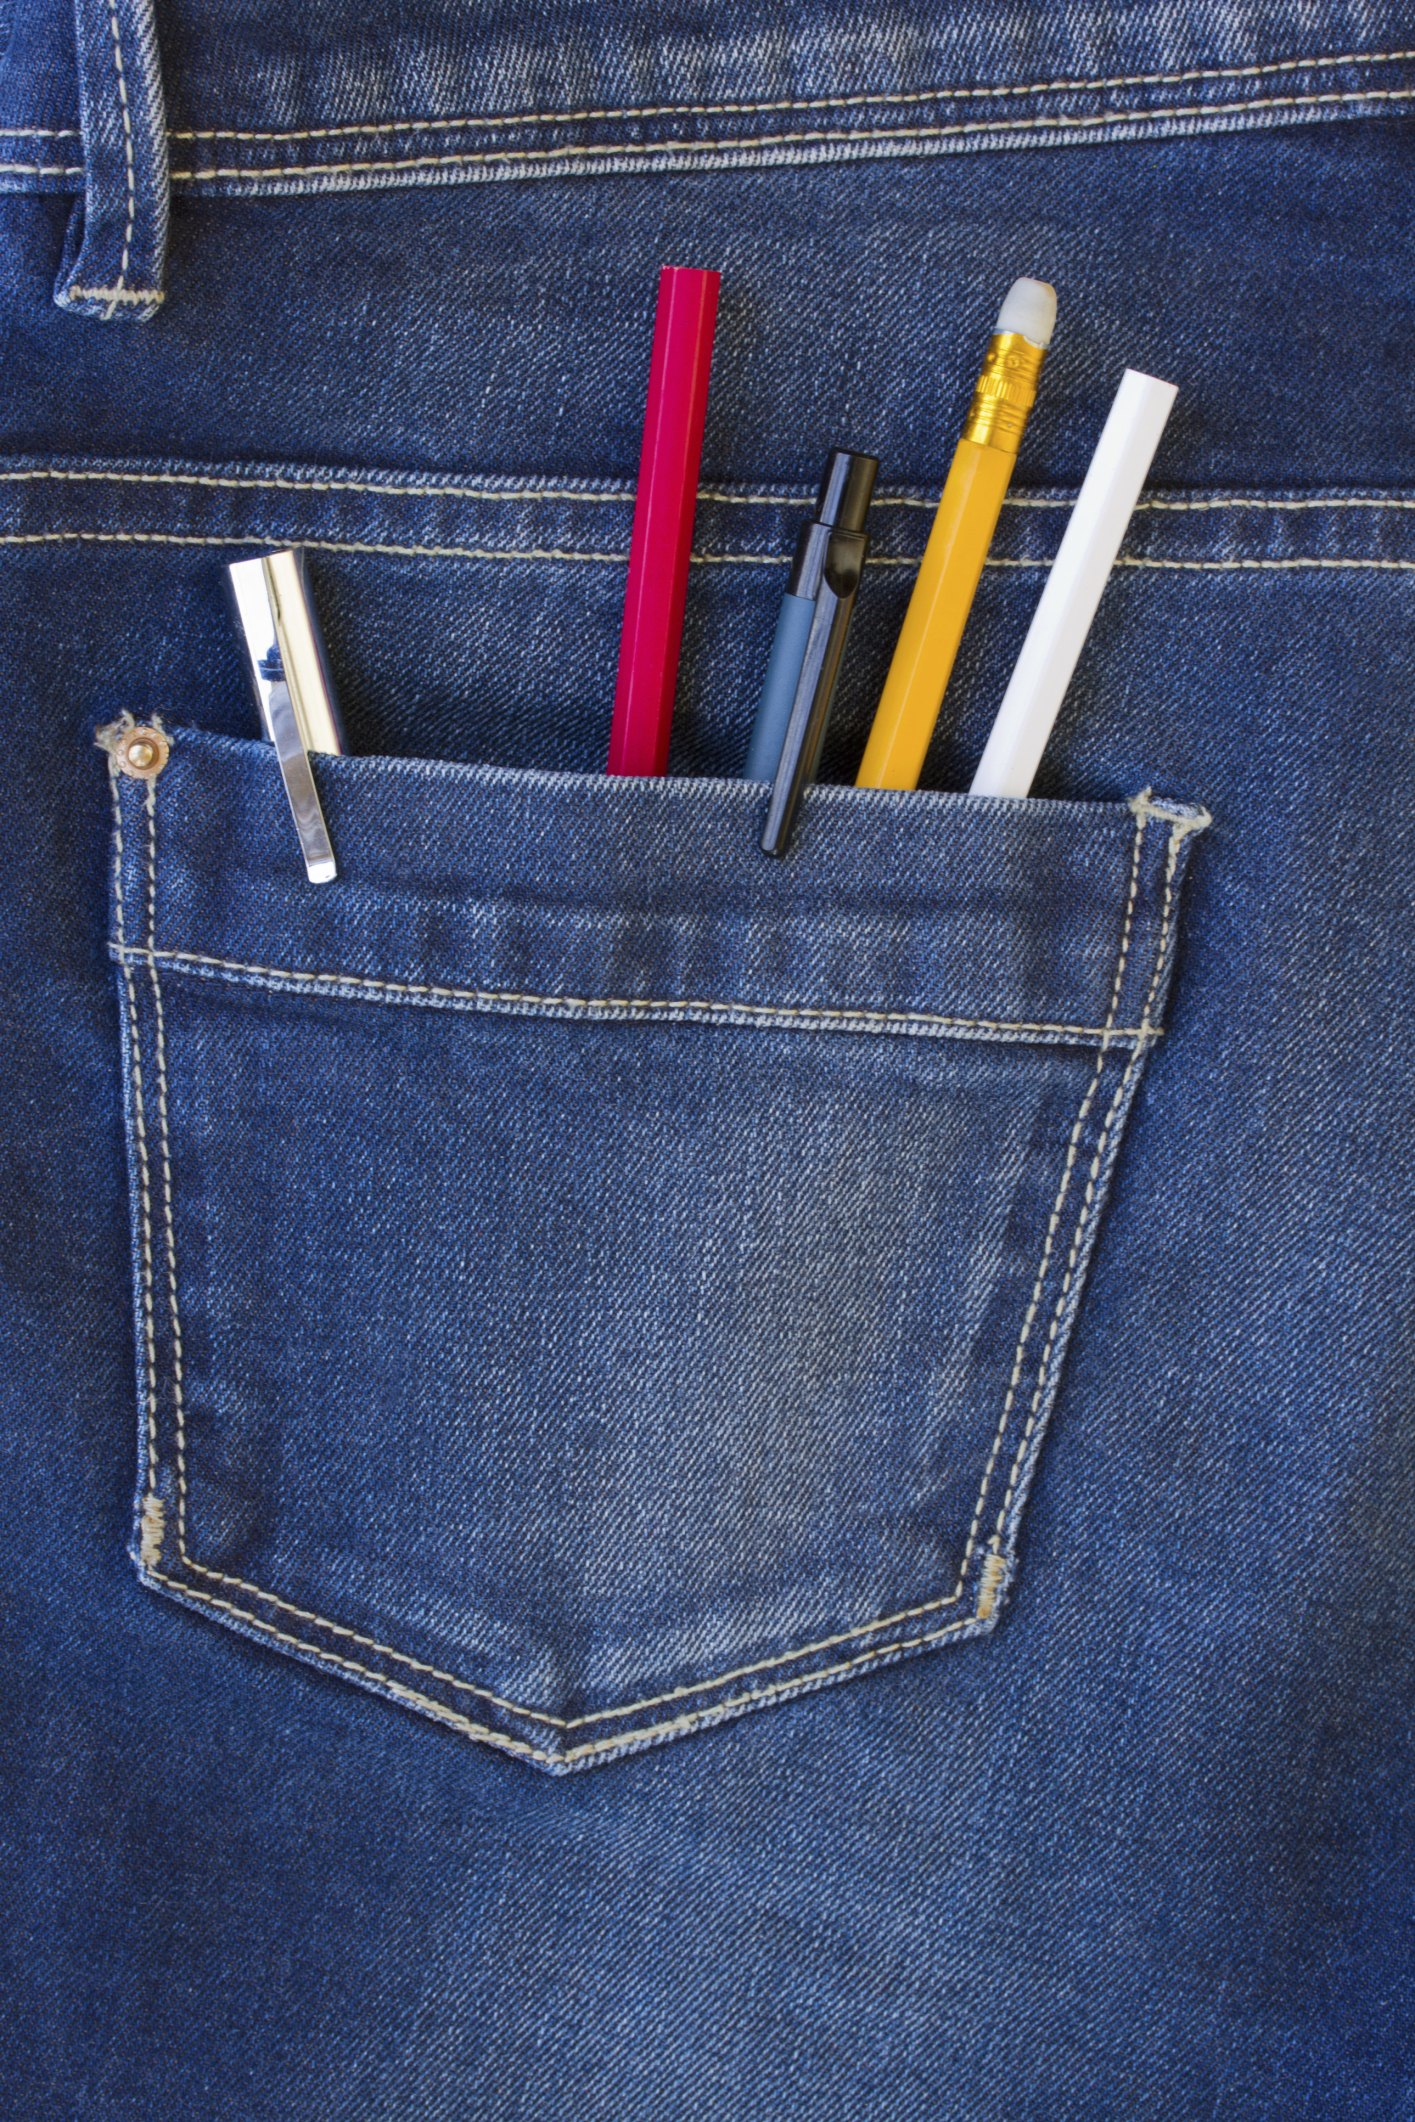 how to get set in ink stains out of jeans